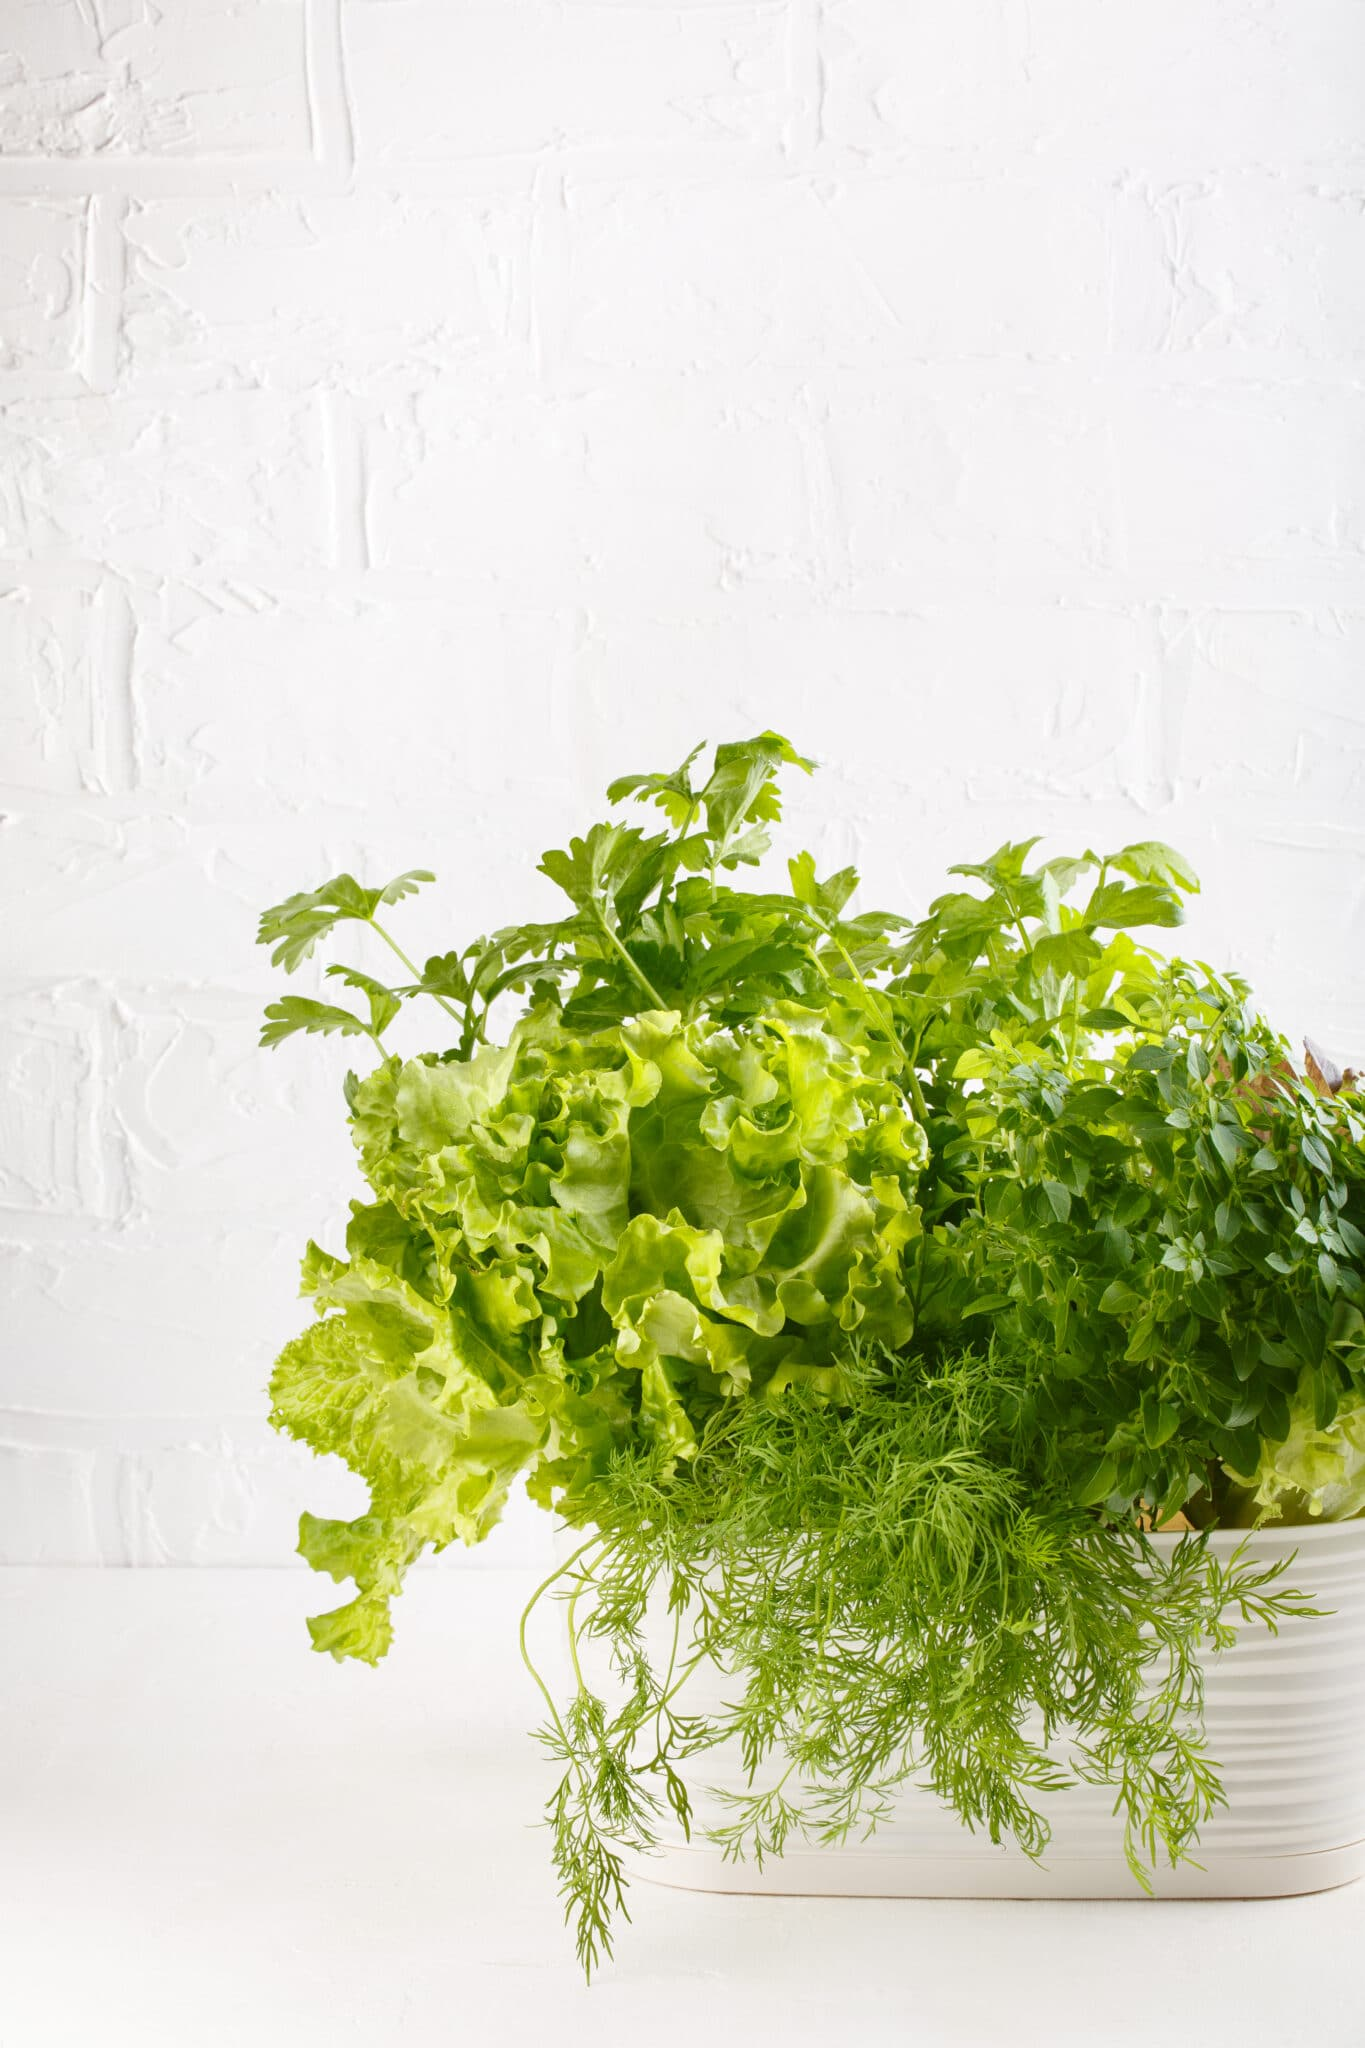 Fresh aromatic culinary herbs in pot on white background. Lettuce, dill, leaf celery and small leaved basil.